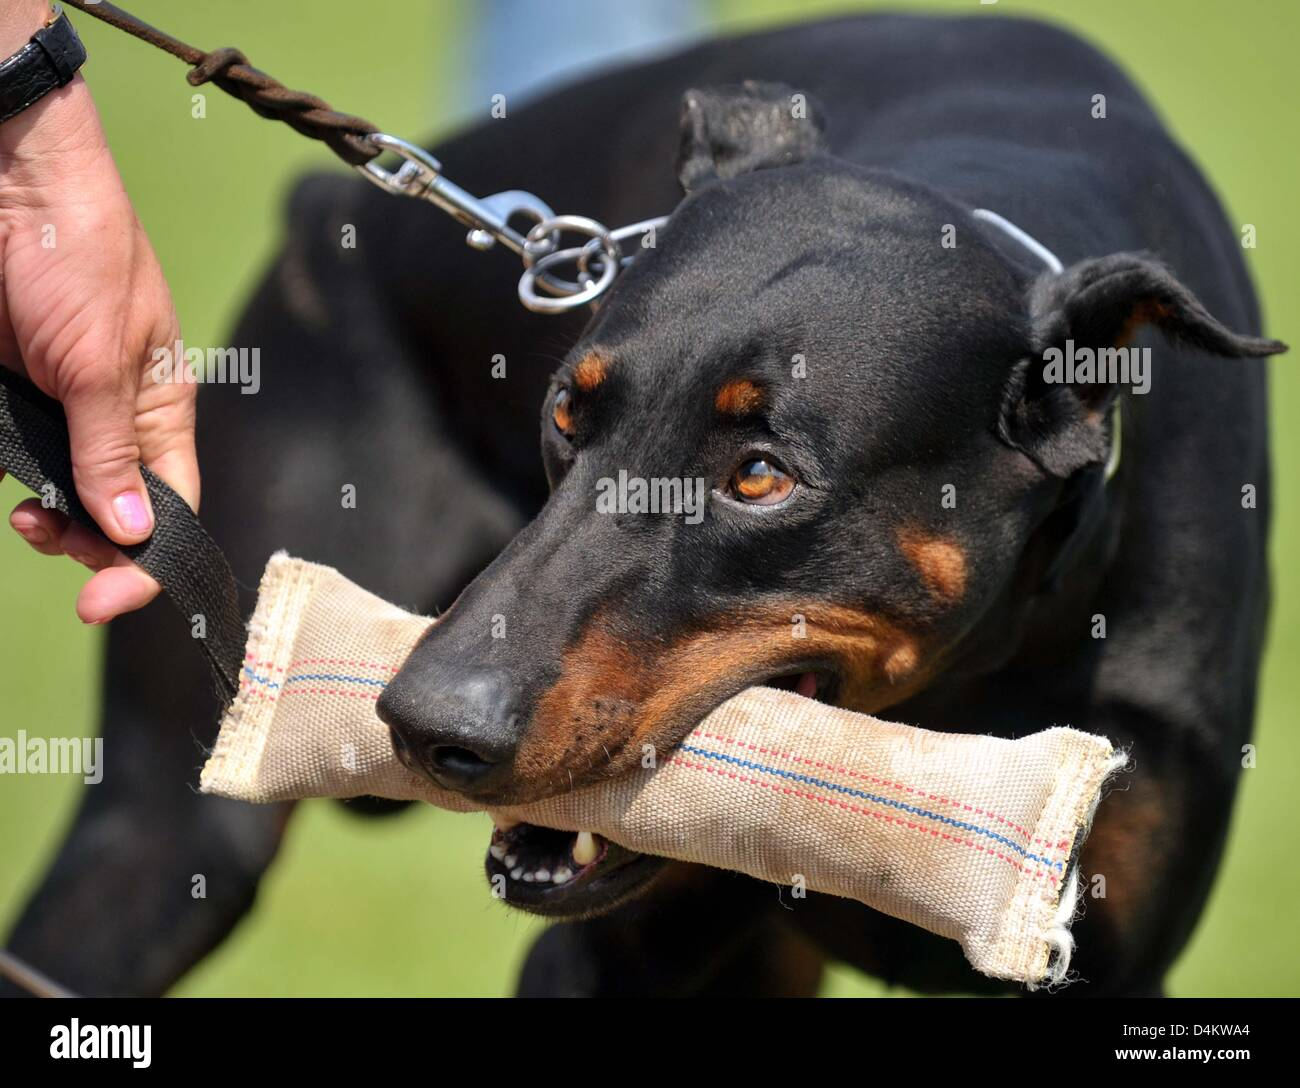 A dobermann is pictured during the training for the Dobermann World Championships in Apolda, Germany, 22 May 2009. - Stock Image